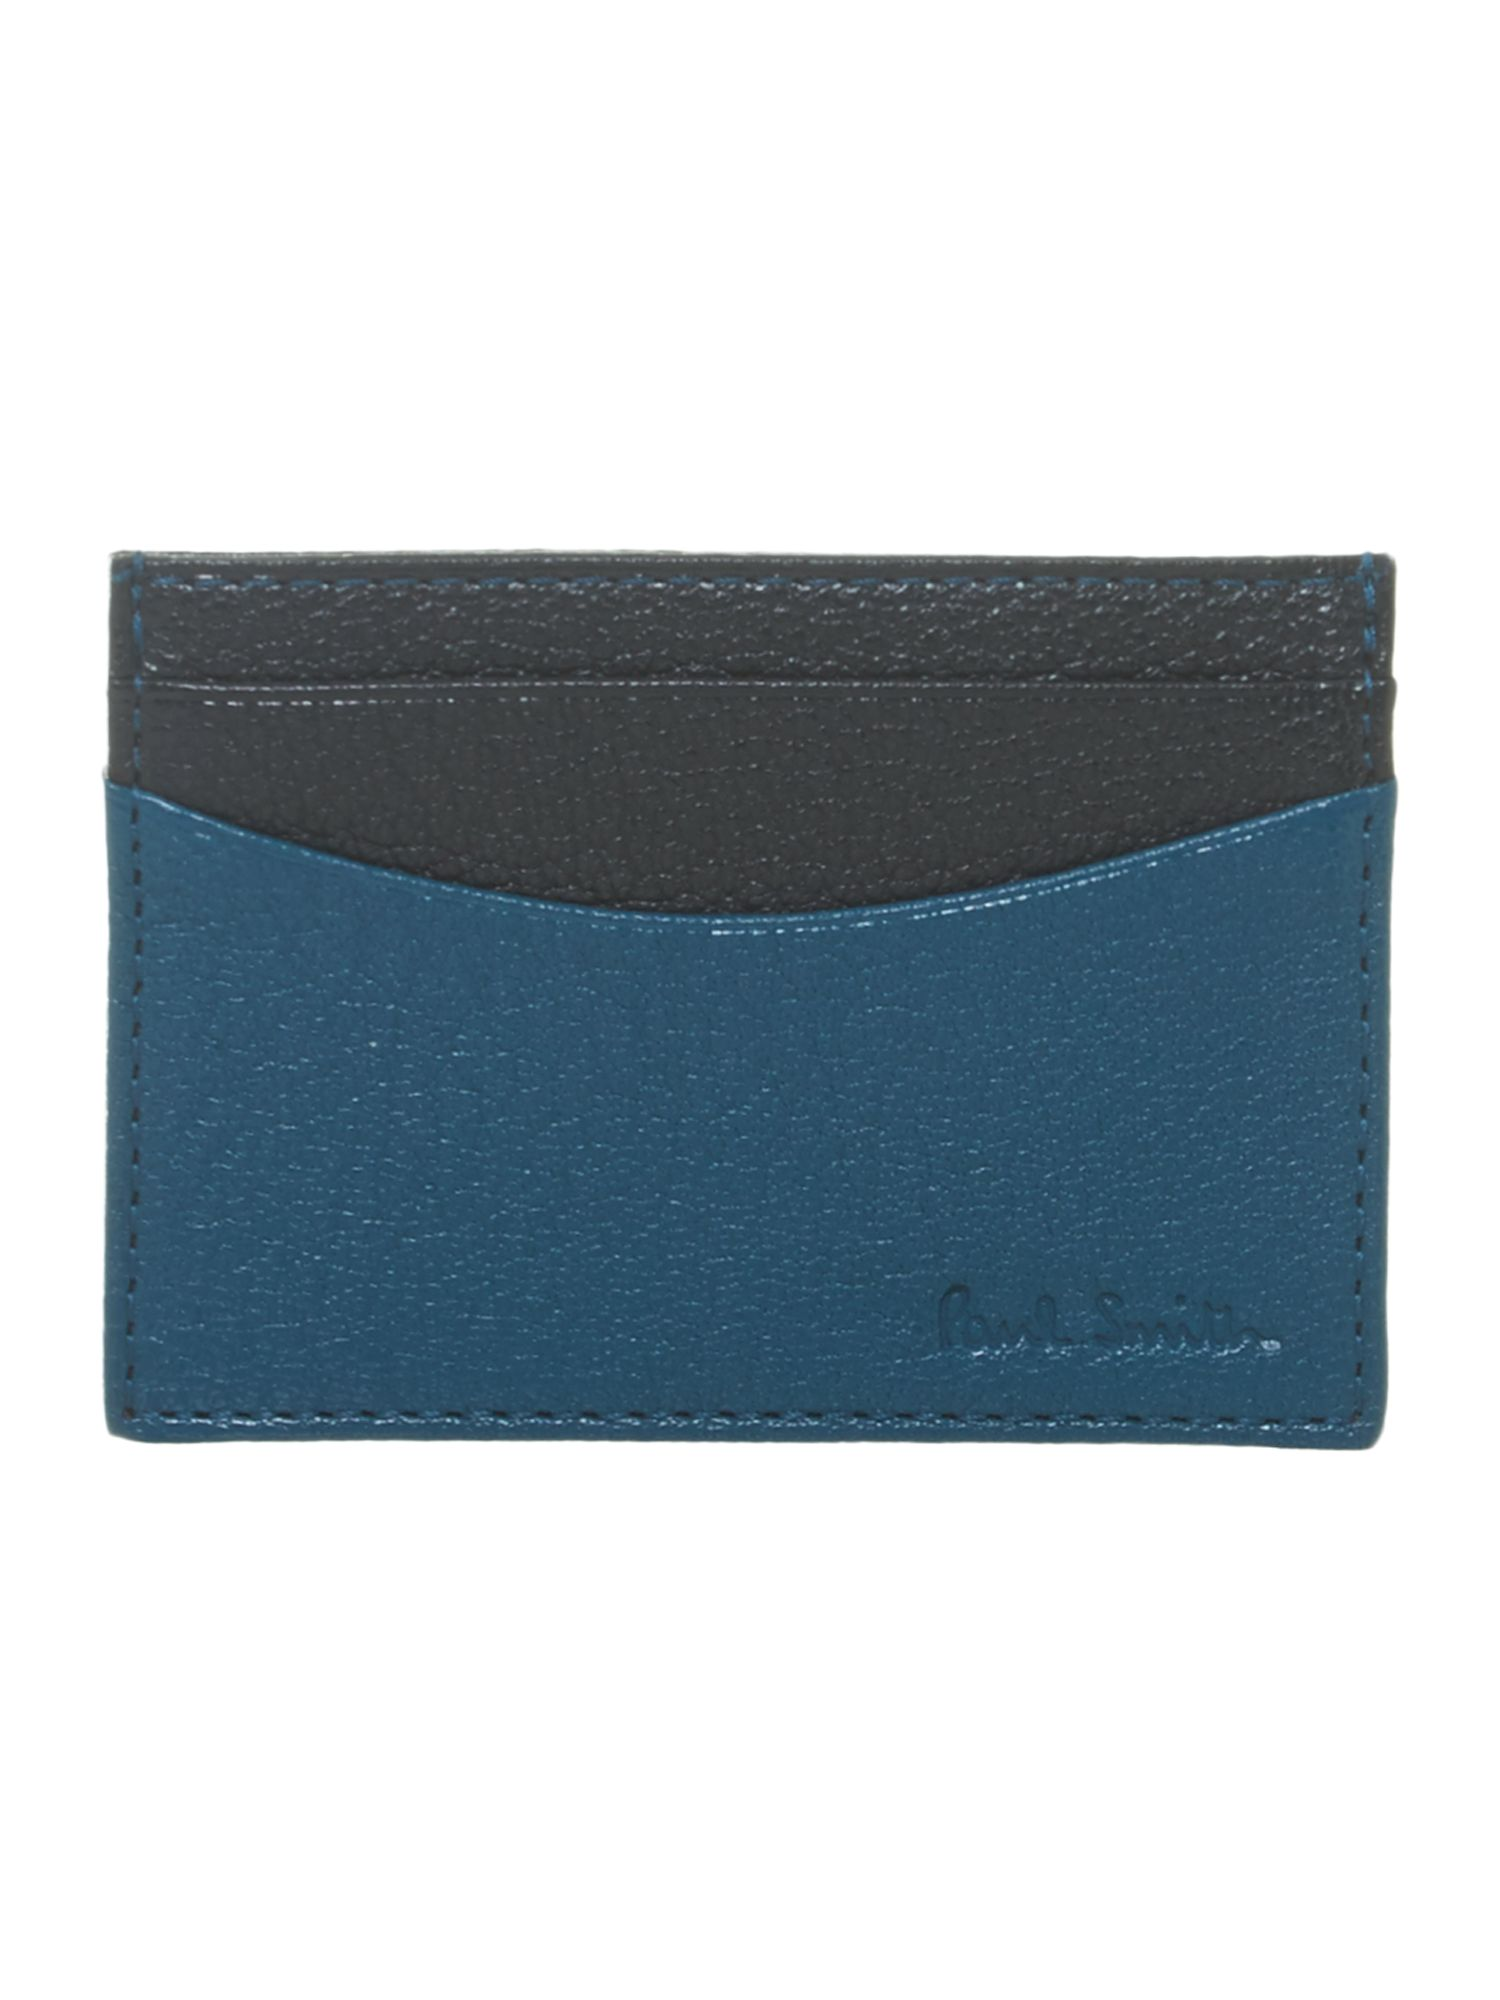 Contrast card case